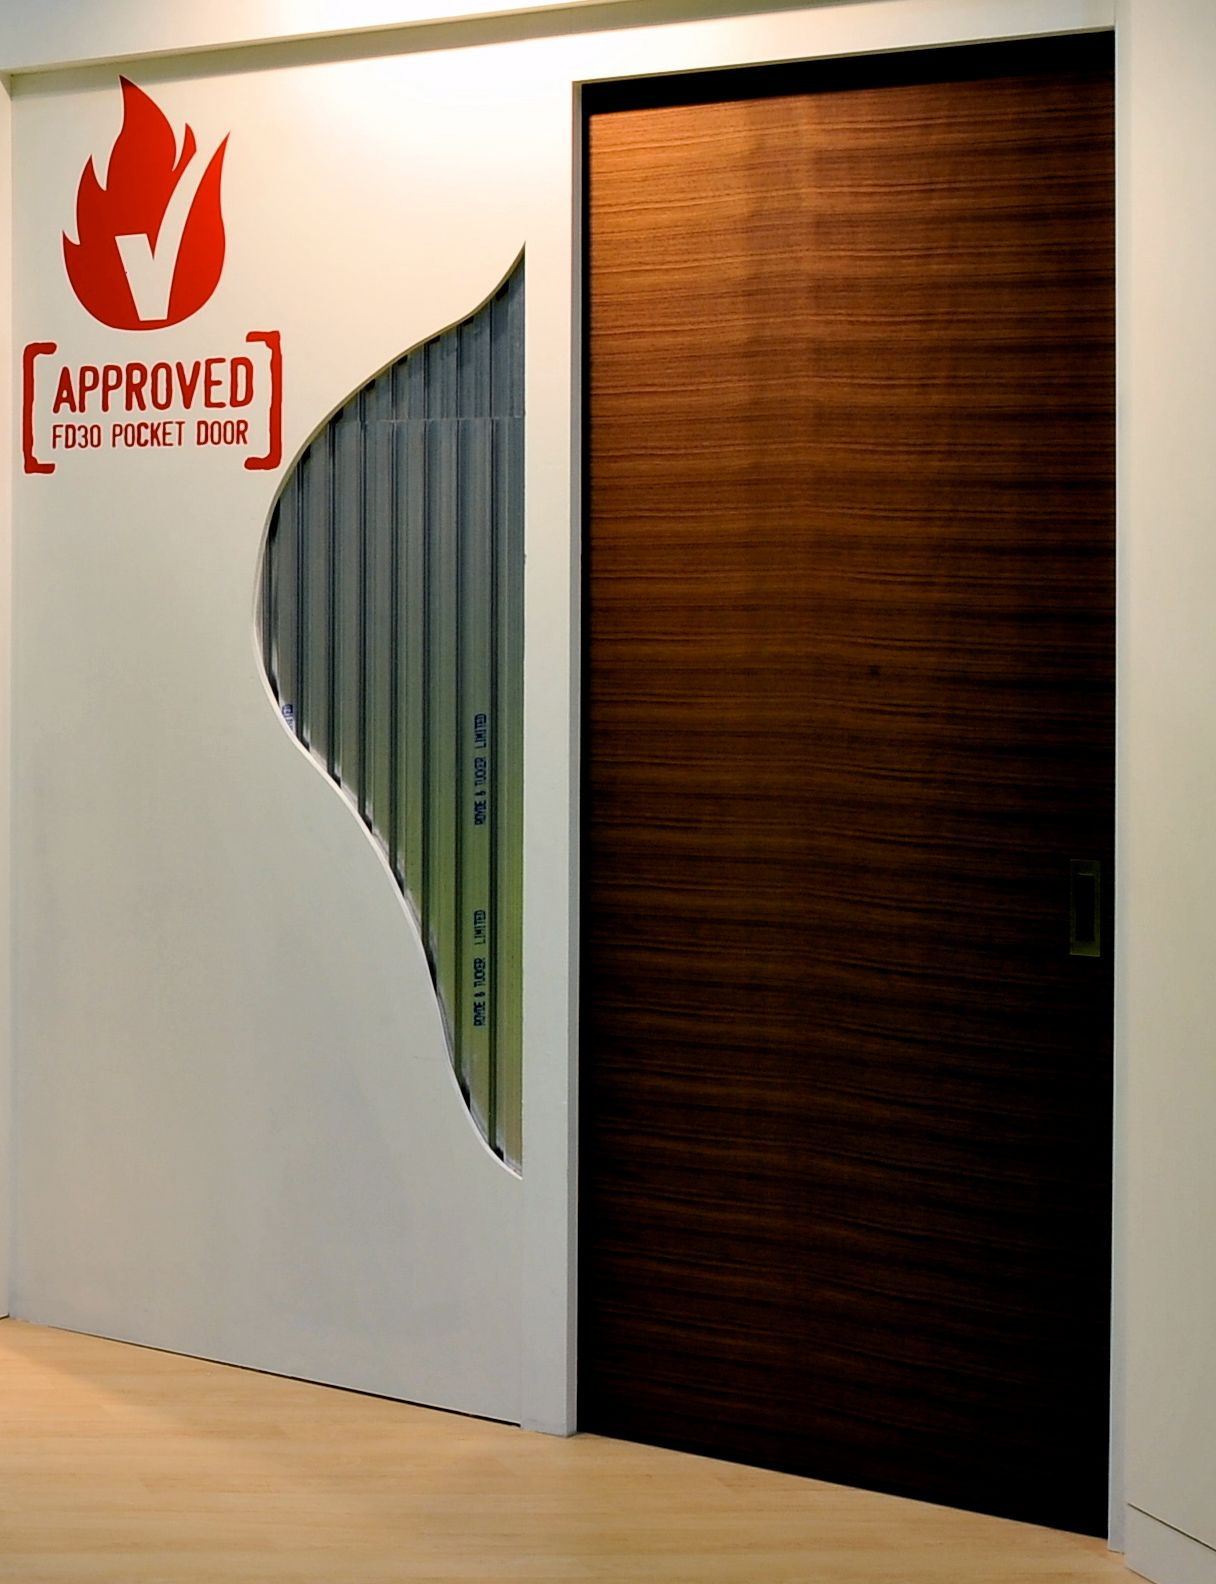 Fire Rated Pocket Door : Sliding pocket doors fire rated protect your home from